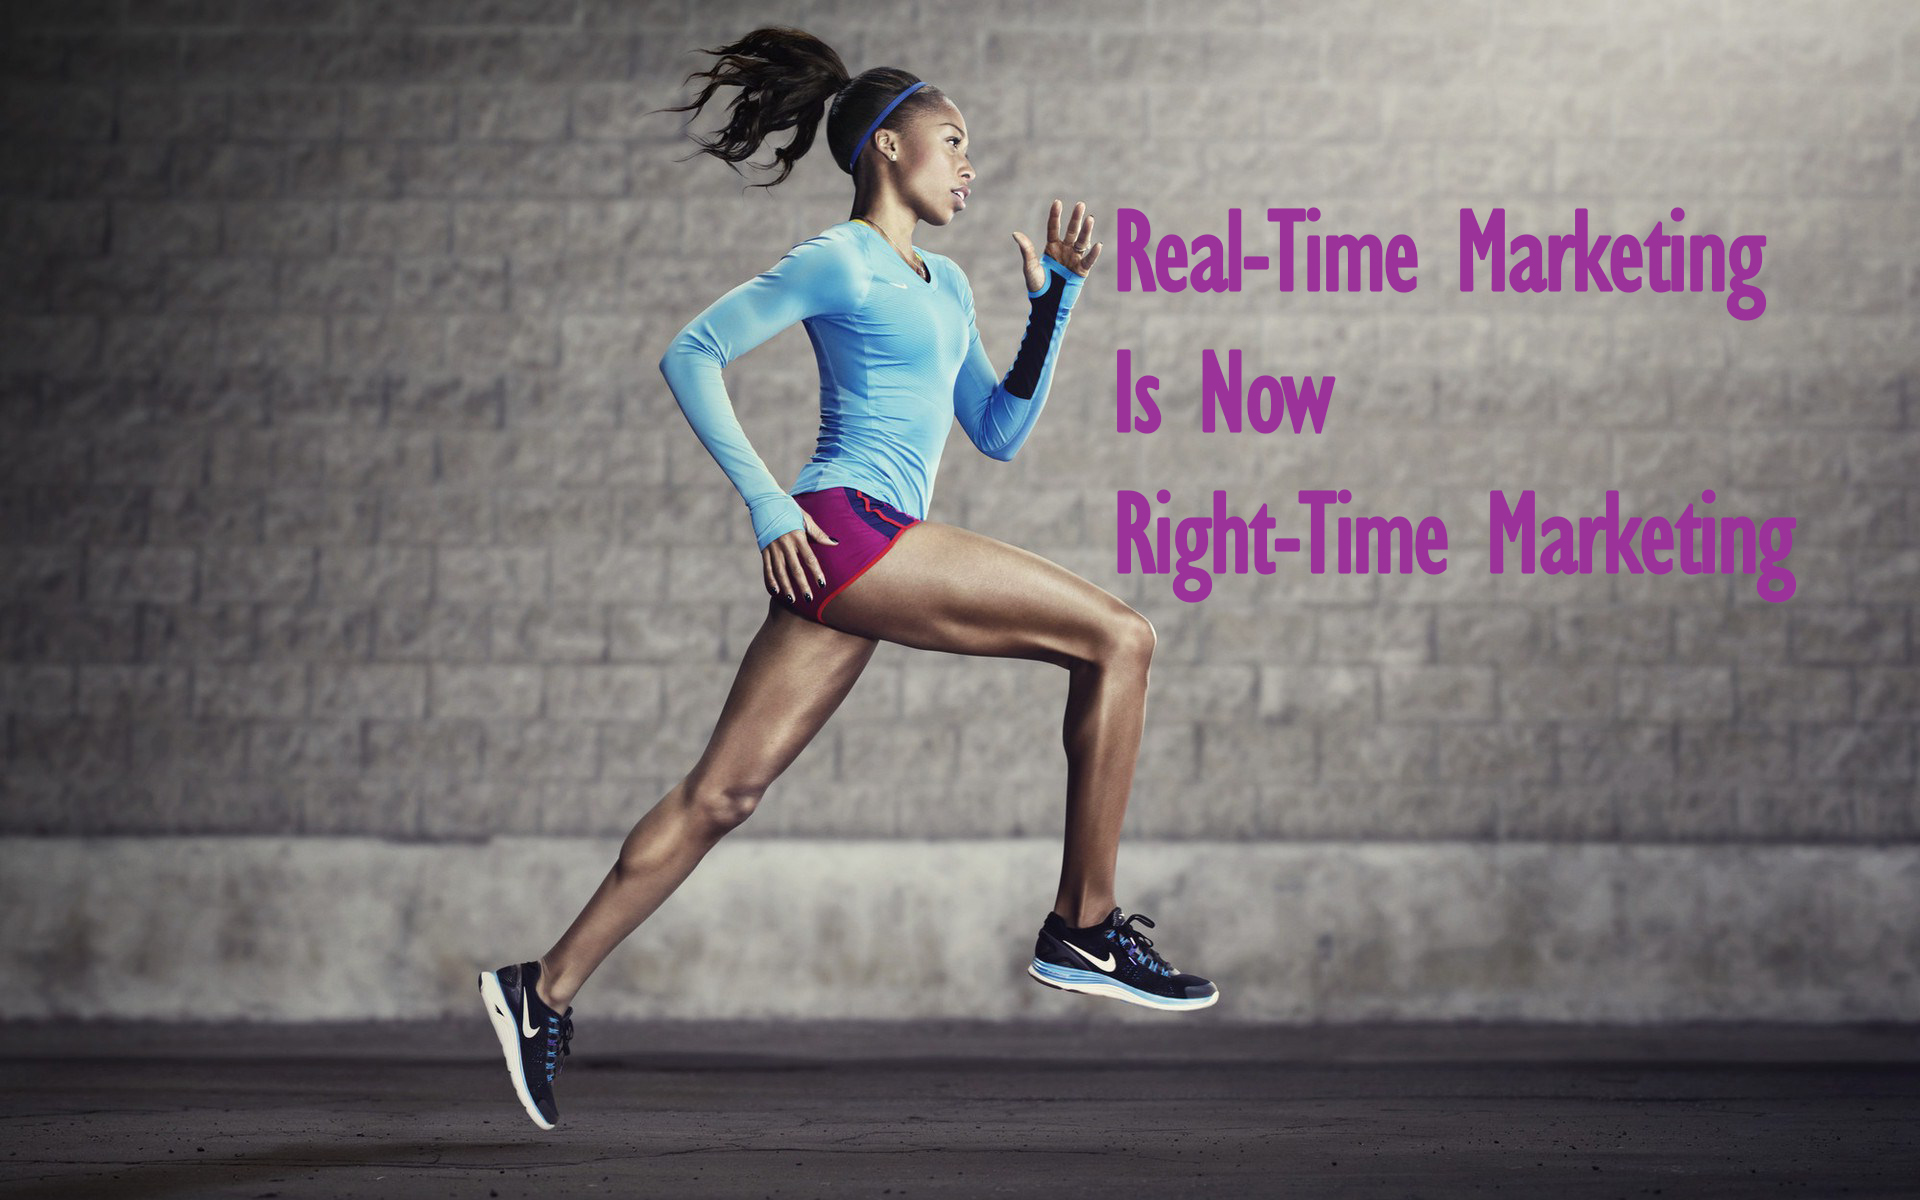 Real-Time Marketing Is Now Right-Time Marketing